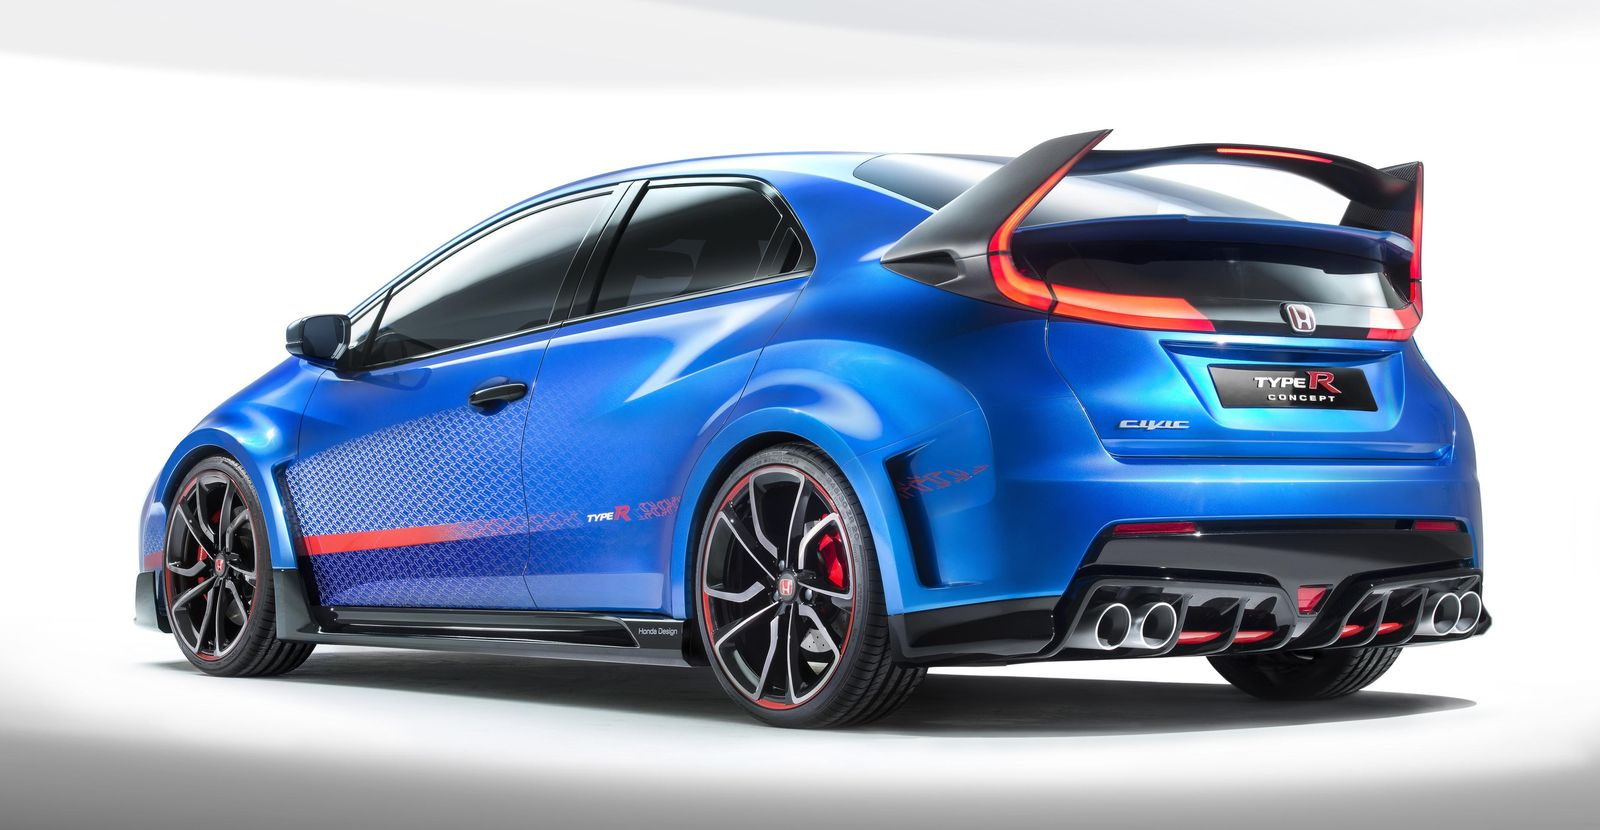 Refreshed honda civic civic sport and civic type r at the paris motor show carwow